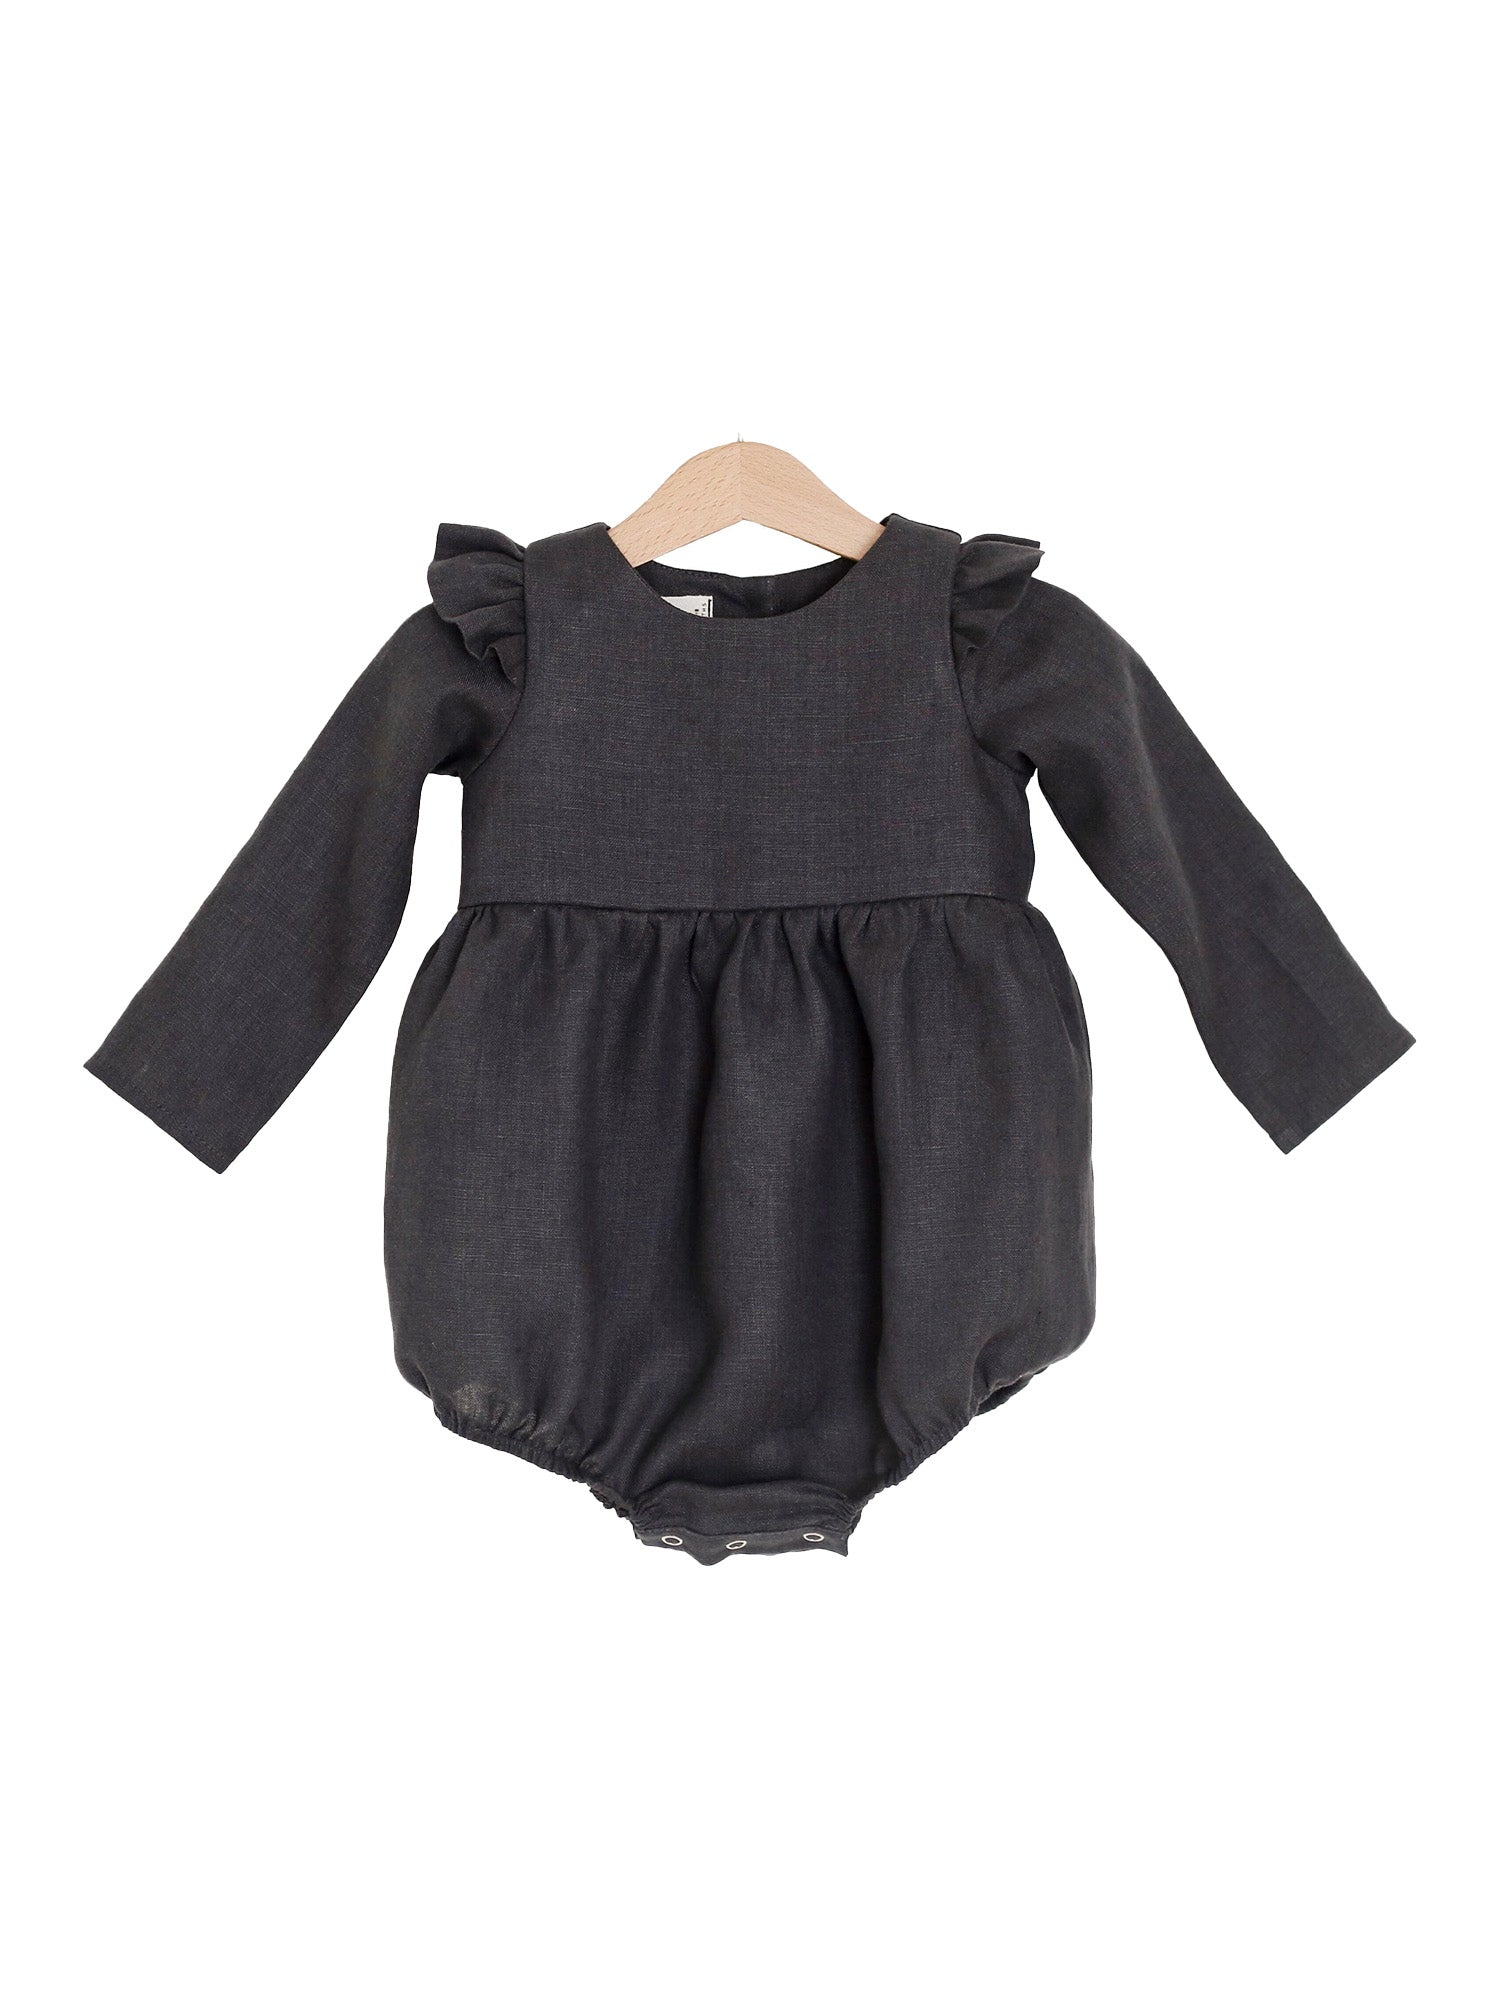 The Audrey: Linen Flutter Sleeve Romper, Black